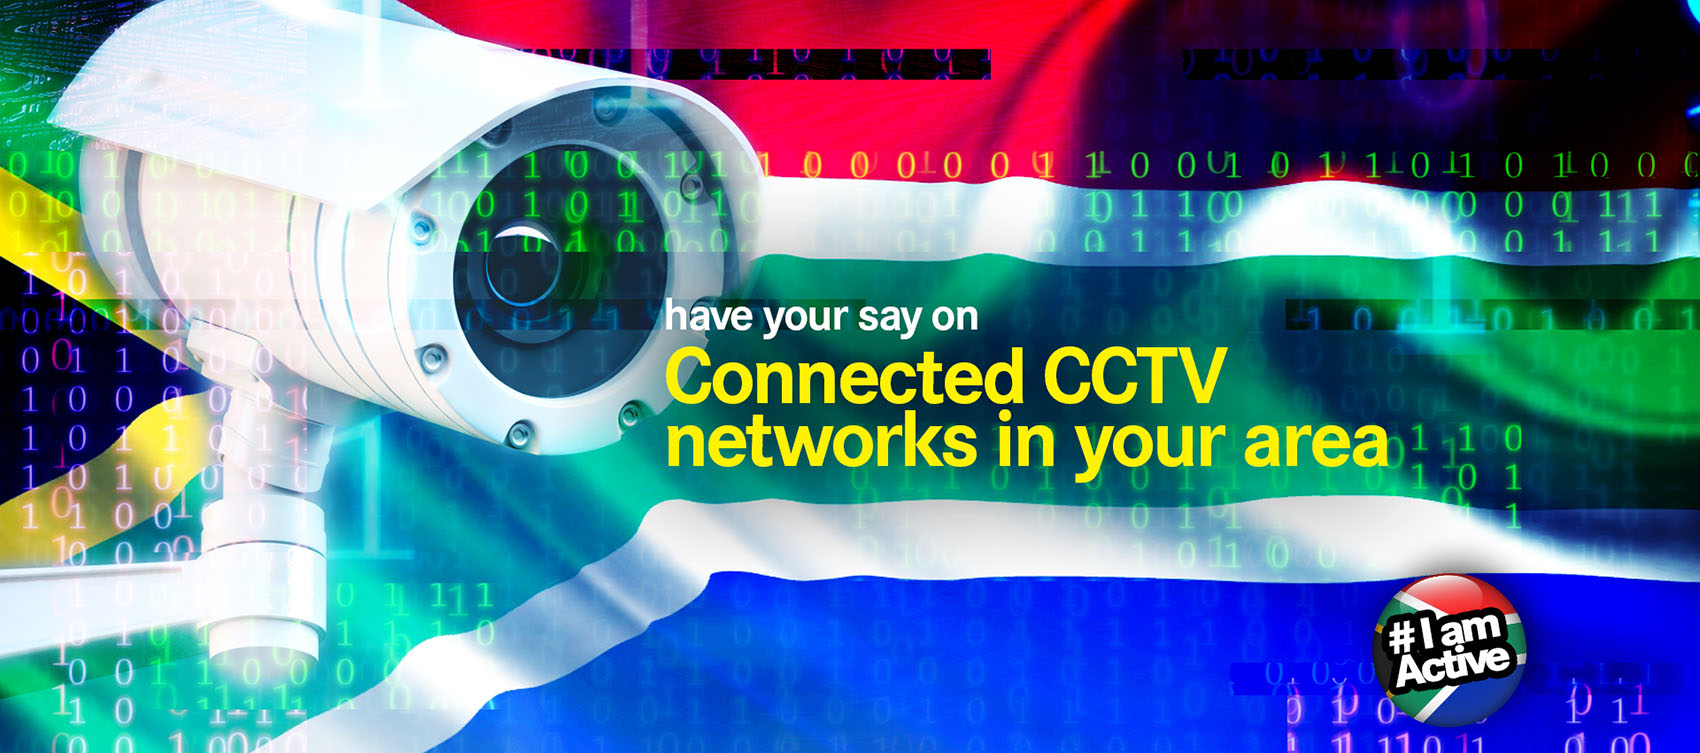 DearSA-cctv-connected-network